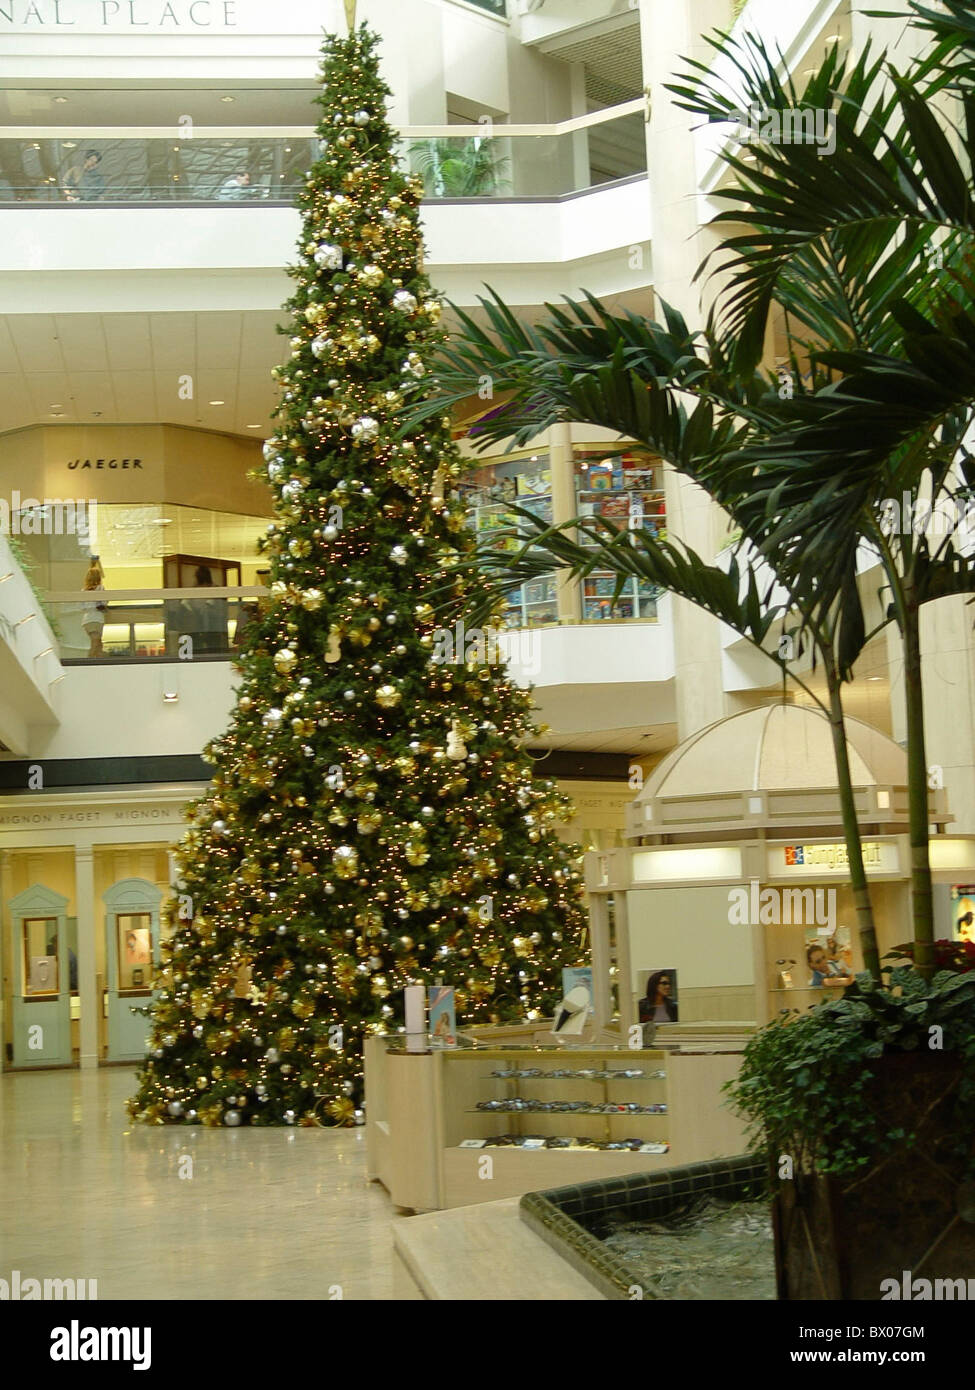 stock photo atrium christmas tree shopping centre entrance hall shops dealings trade commerce inside stores louisiana - Christmas Tree Shopping